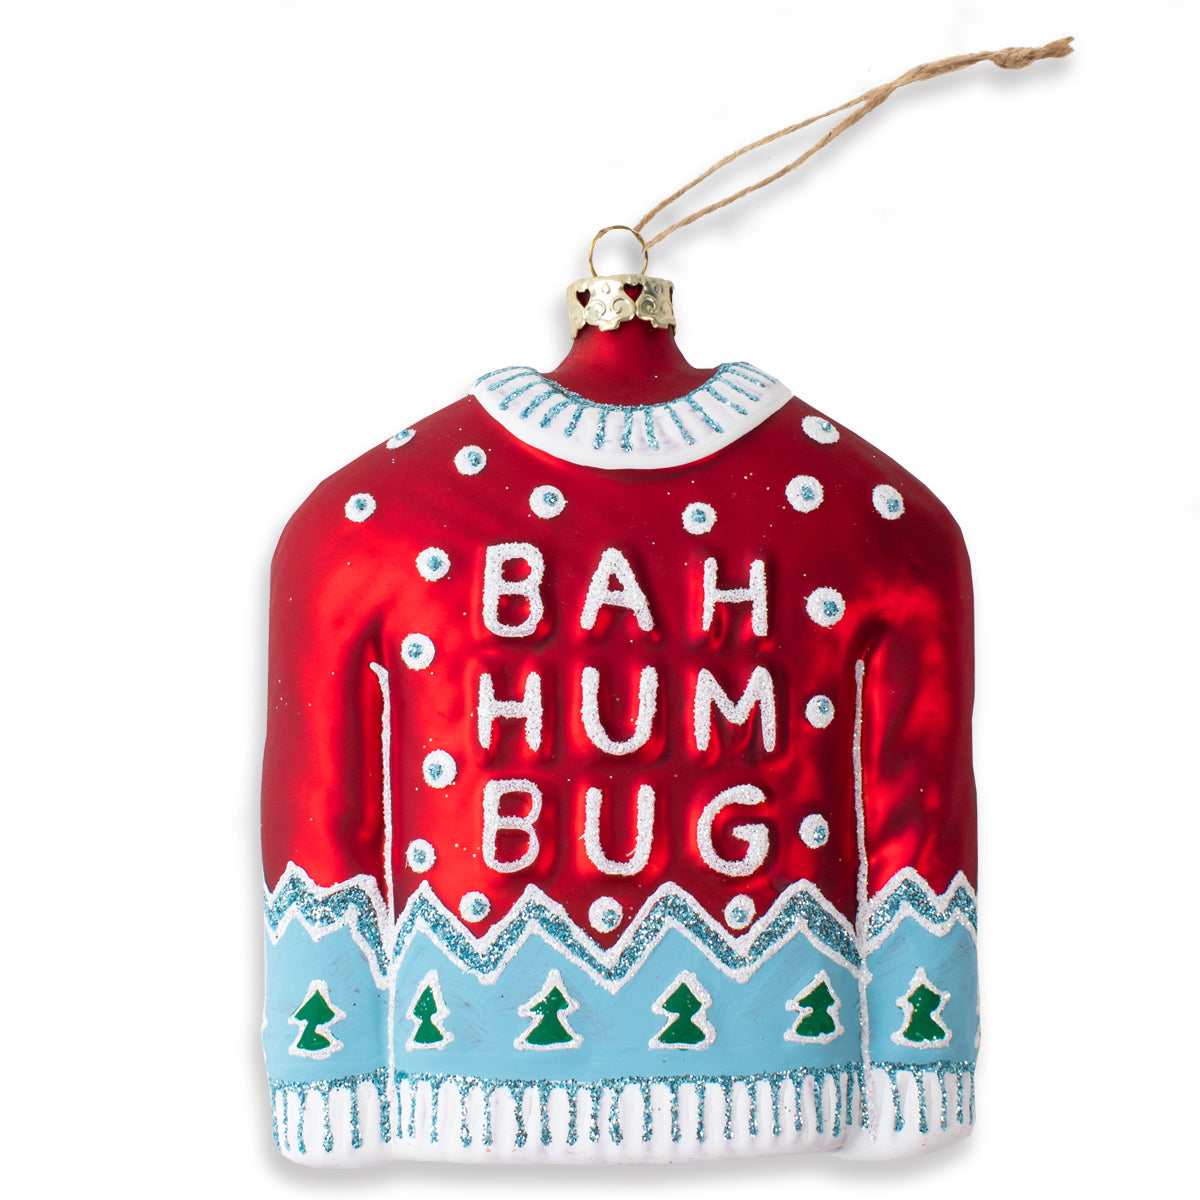 Furbish Studio - Bah Humbug Red Sweater Ornament